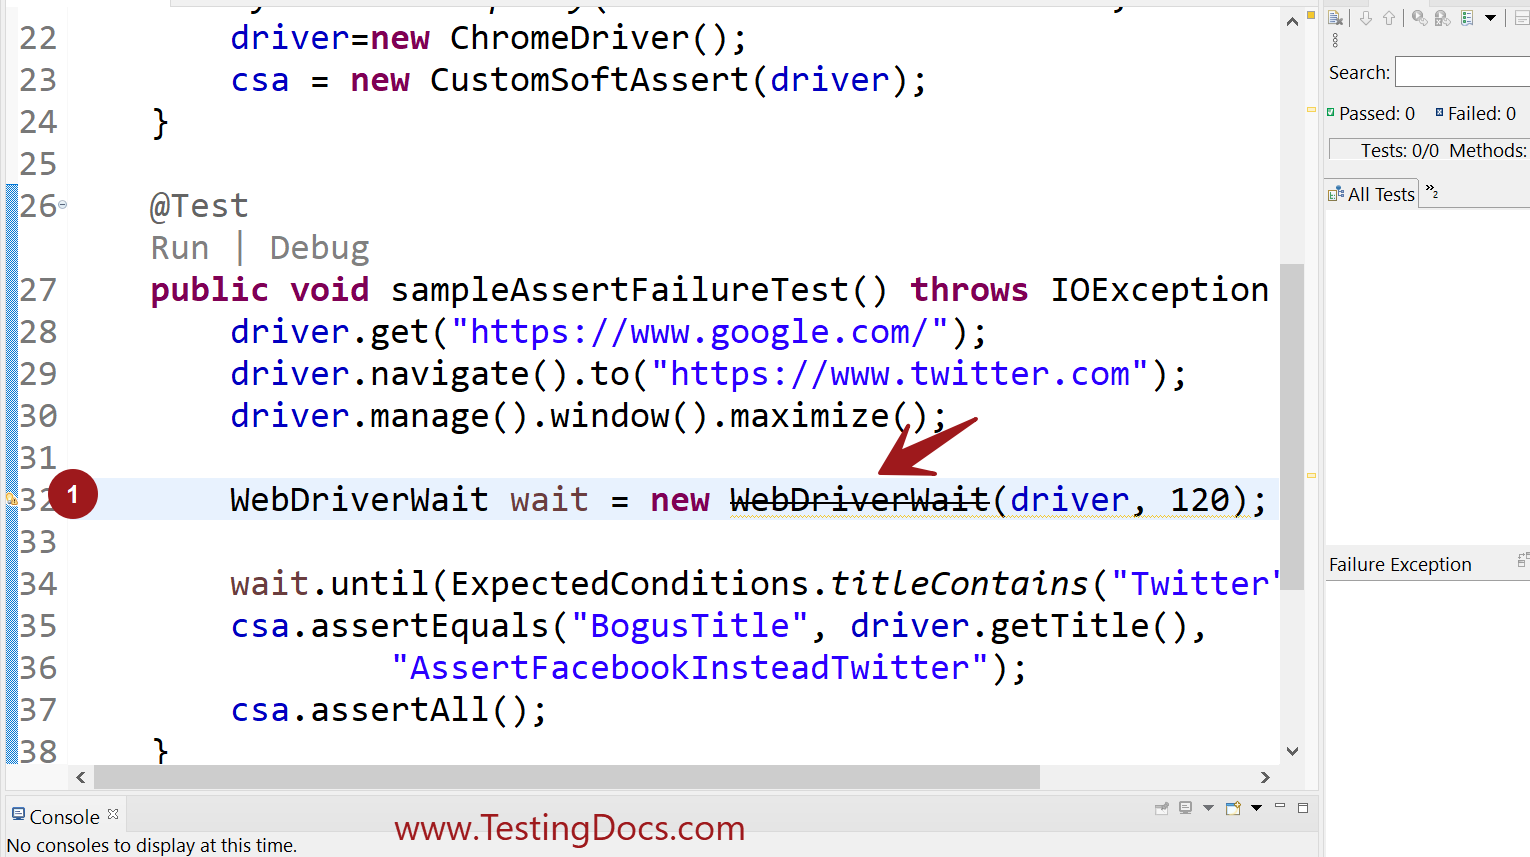 How to fix WebDriverWait deprecated message in Selenium tests?